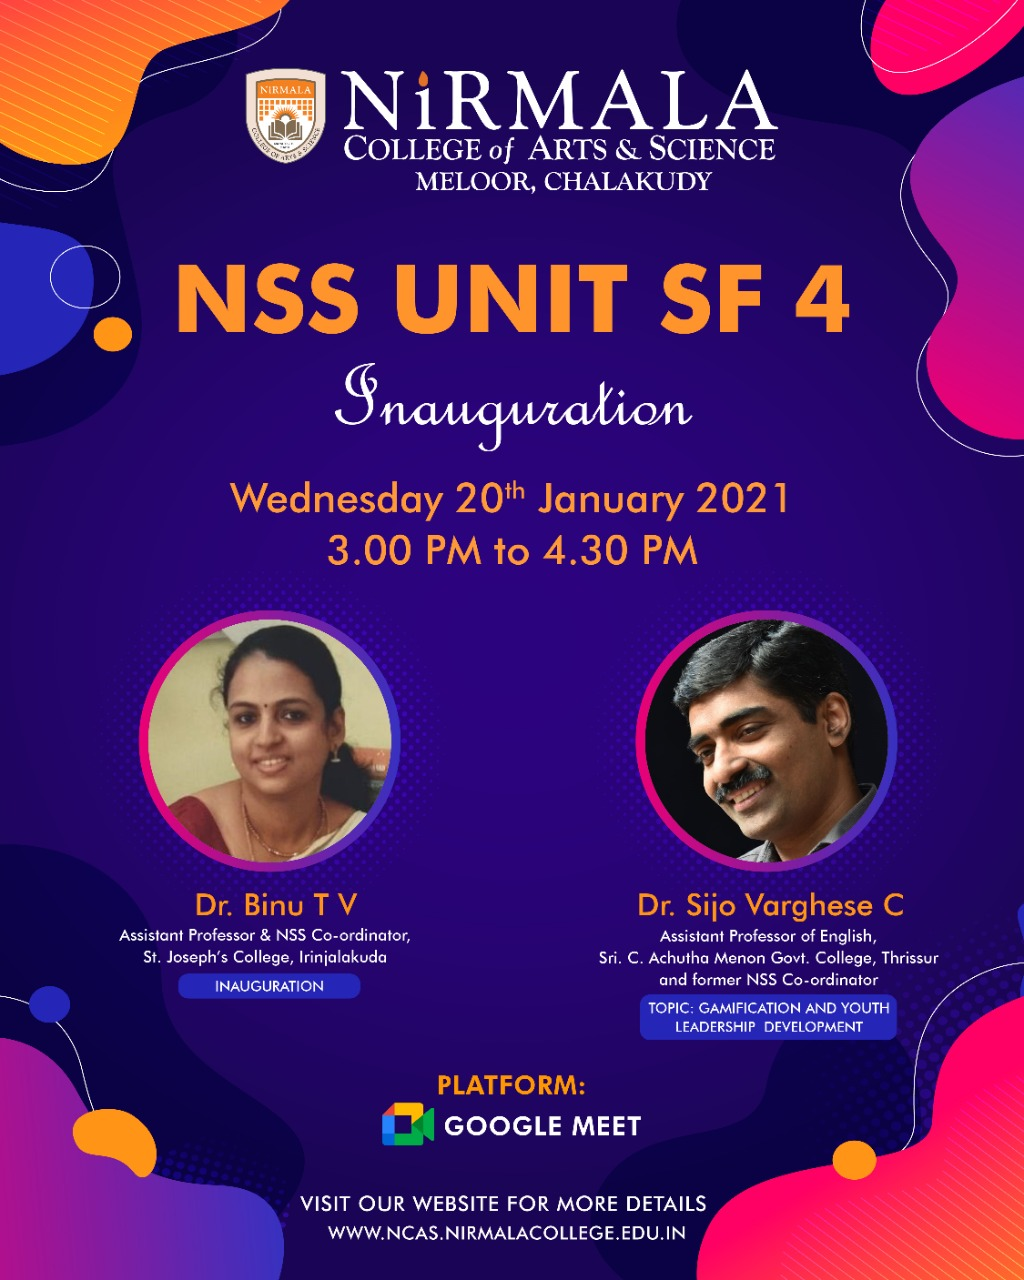 NSS UNIT SF 4 Inauguration